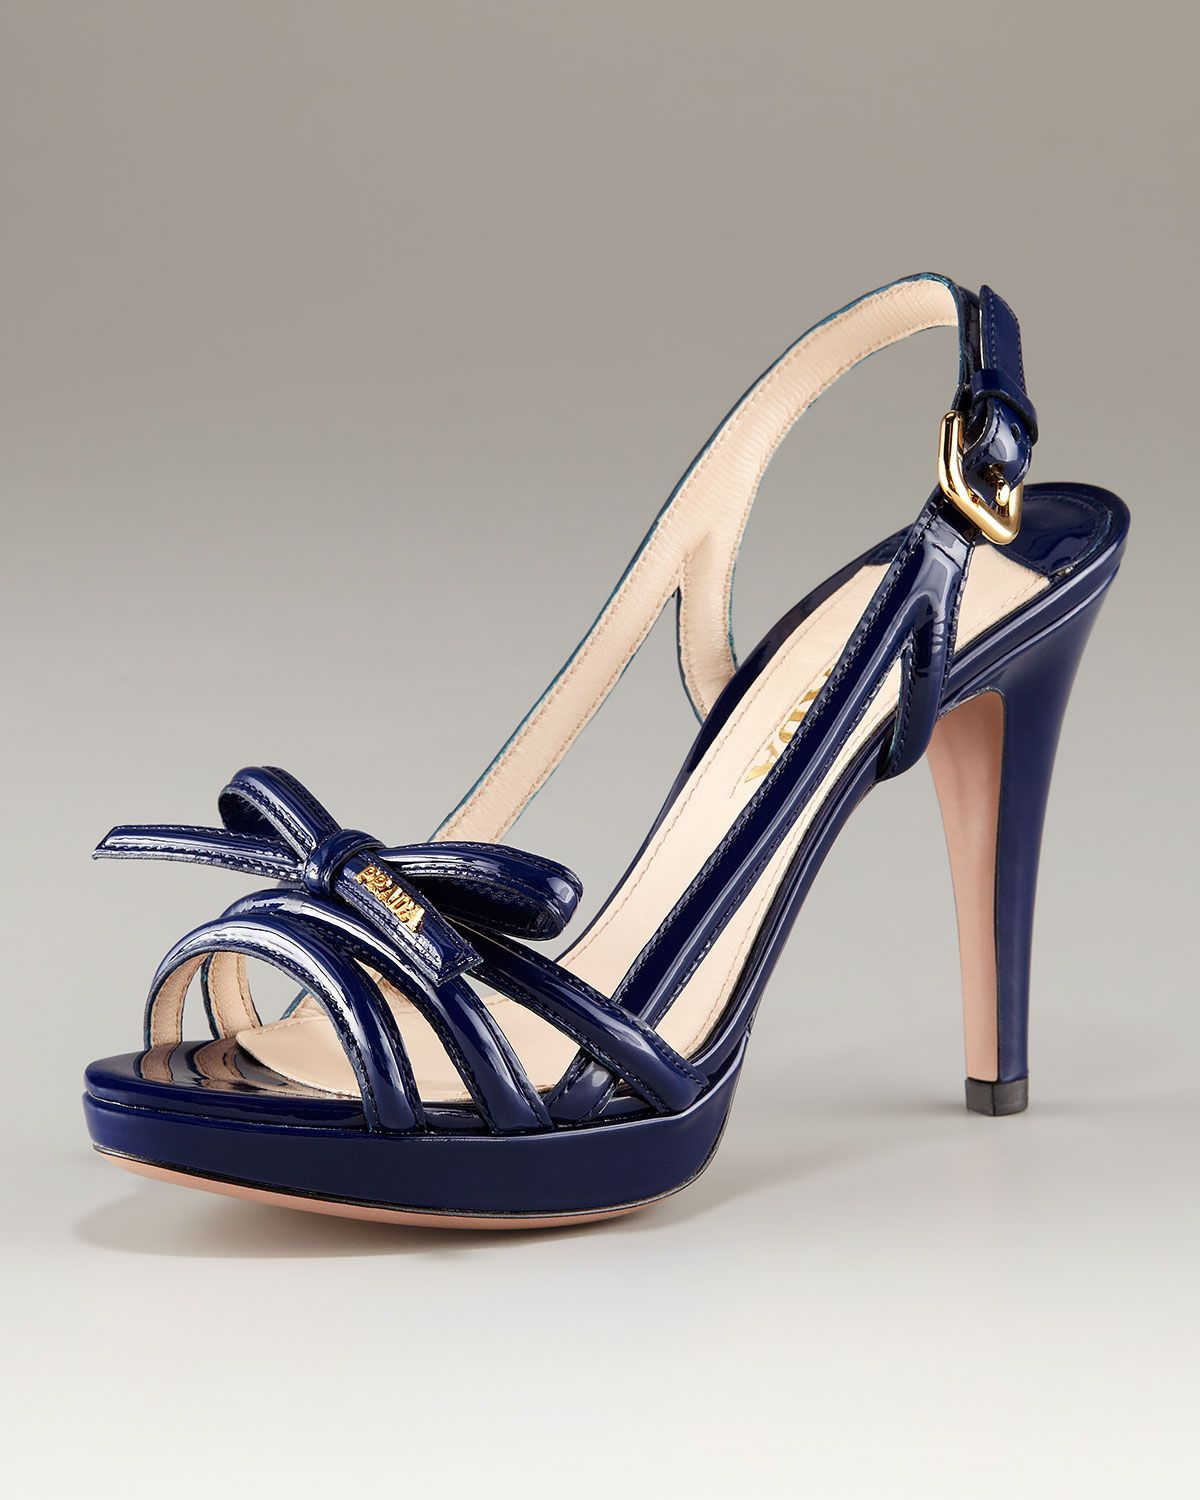 42e569ae94e9 Prada Platform Patent Multi Strap Sandal with Bow in Blue (royal ...